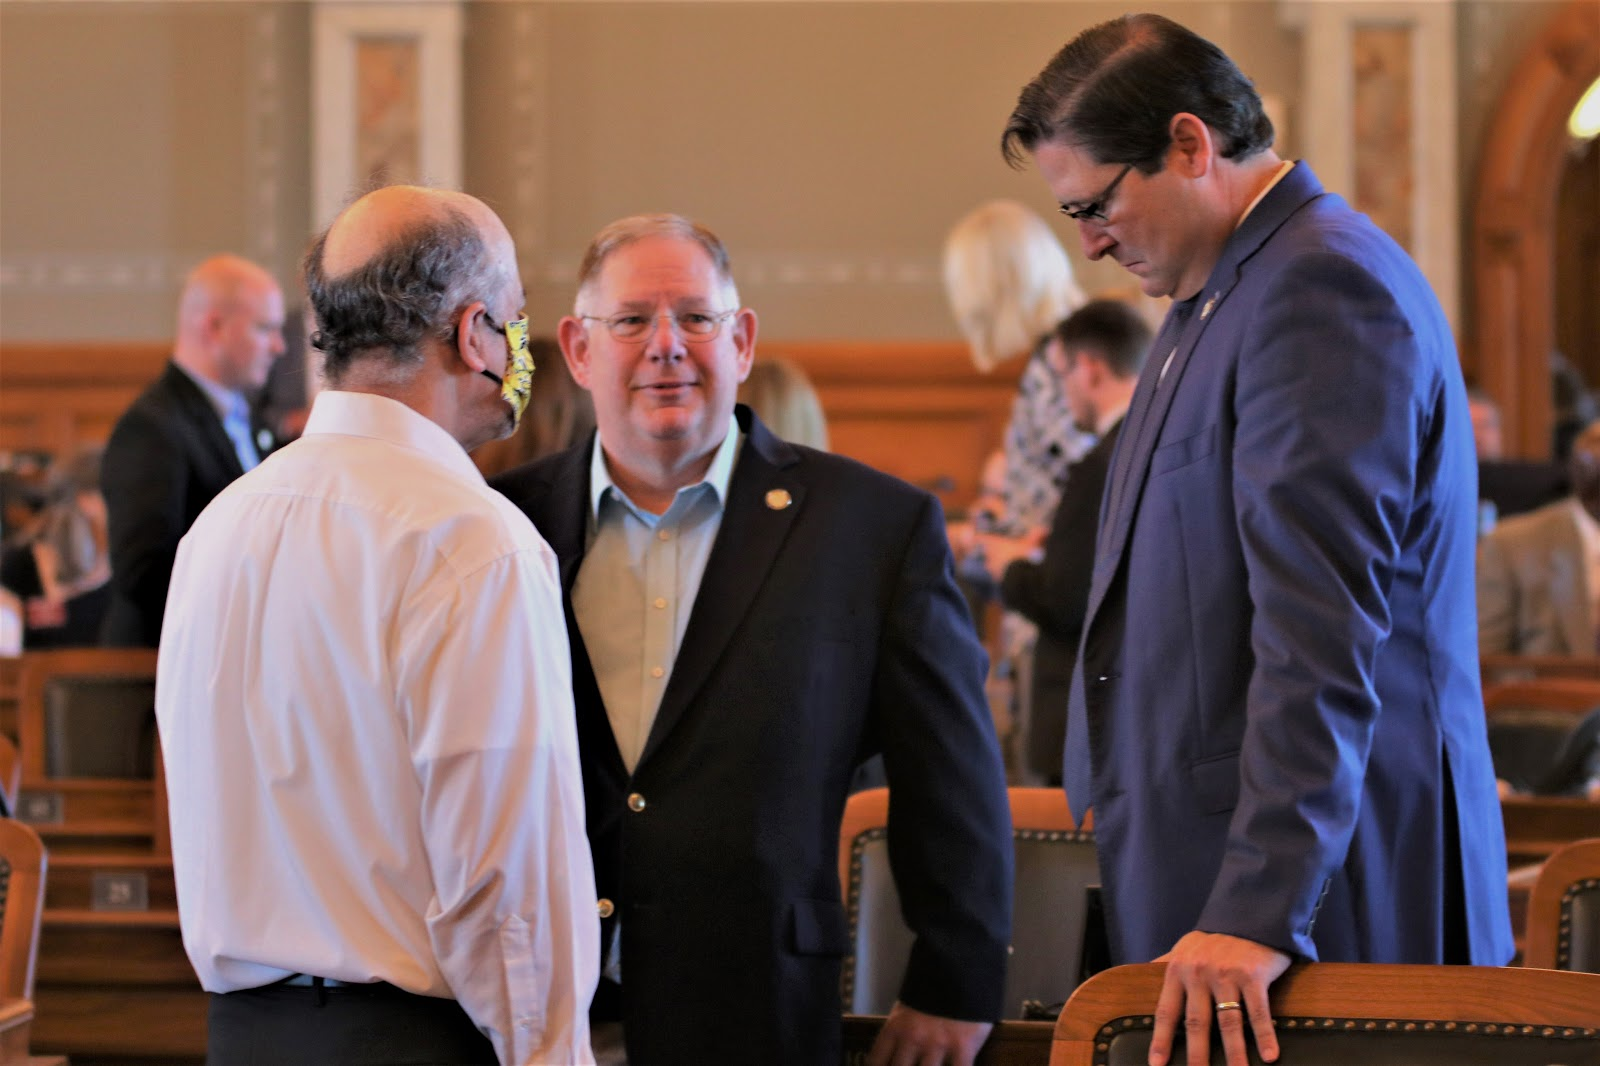 House Speaker Ron Ryckman (right) House Majority Leader Dan Hawkins (center) and House Minority Leader Tom Sawyer speaking earlier this month. All three are members of the panel that decides how to spend the federal aid. (Photo by Jim McLean, Kansas News Service)